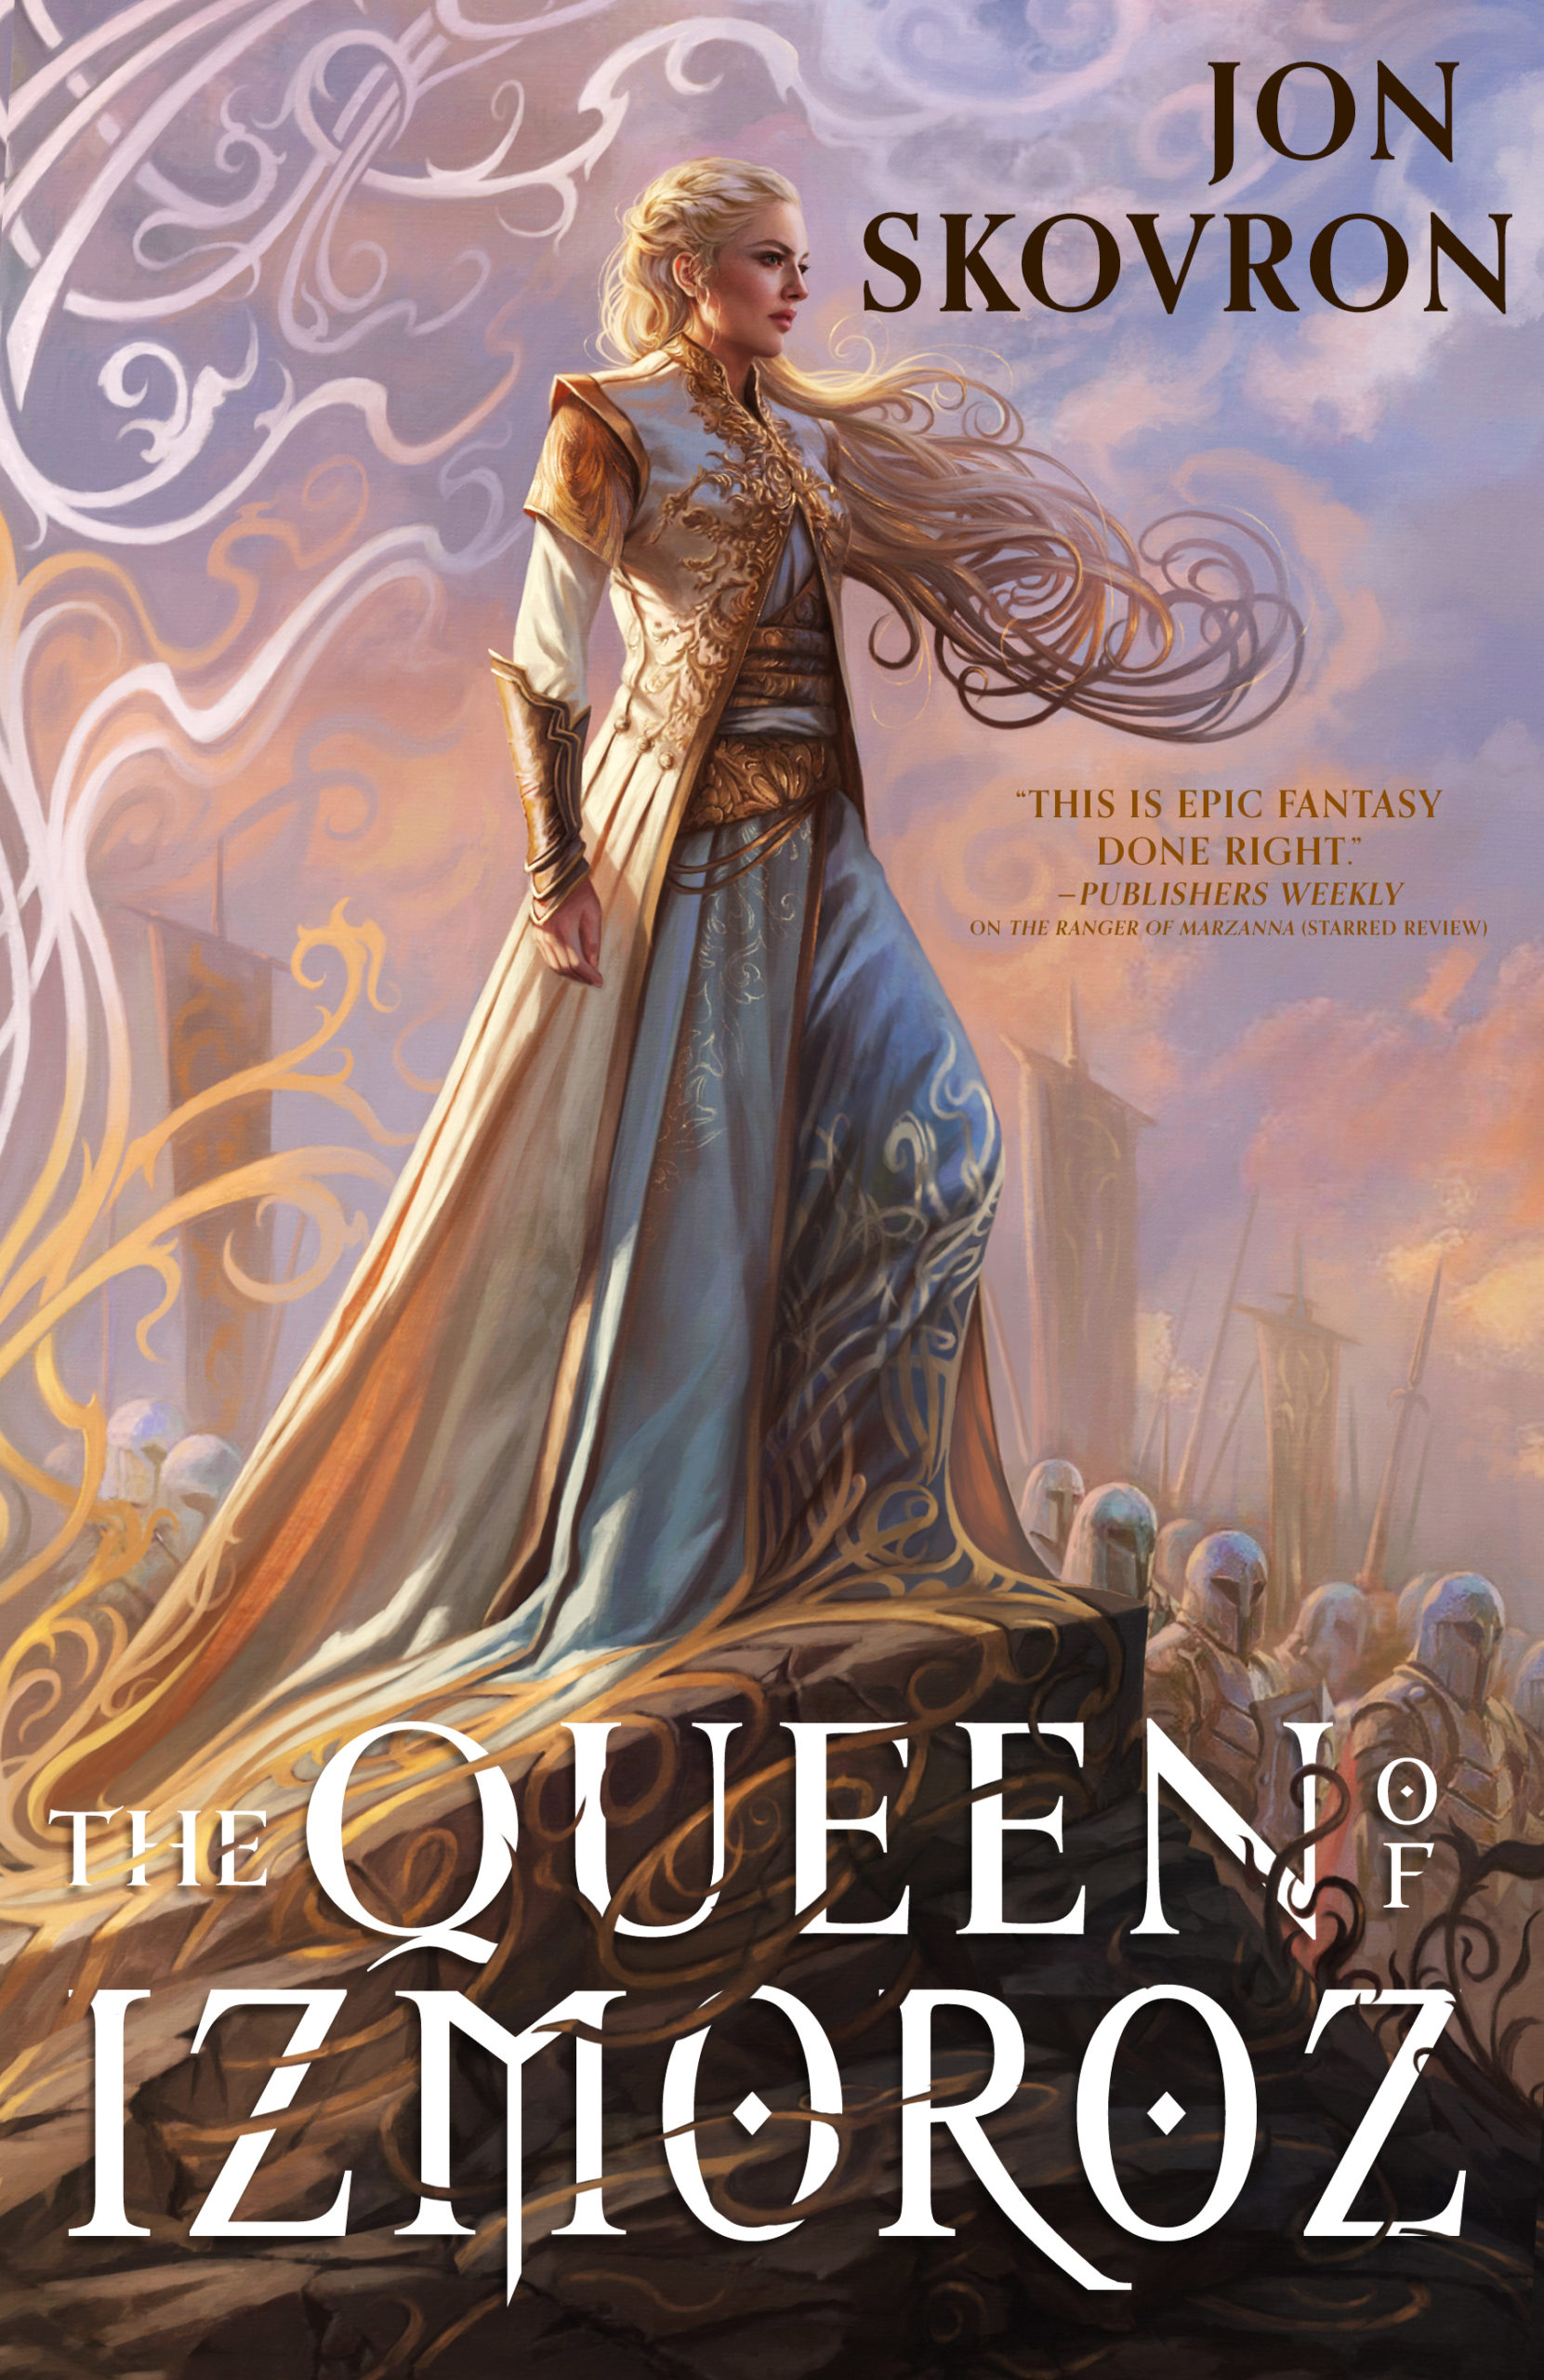 Cover Launch: THE QUEEN OF IZMOROZ by Jon Skovron